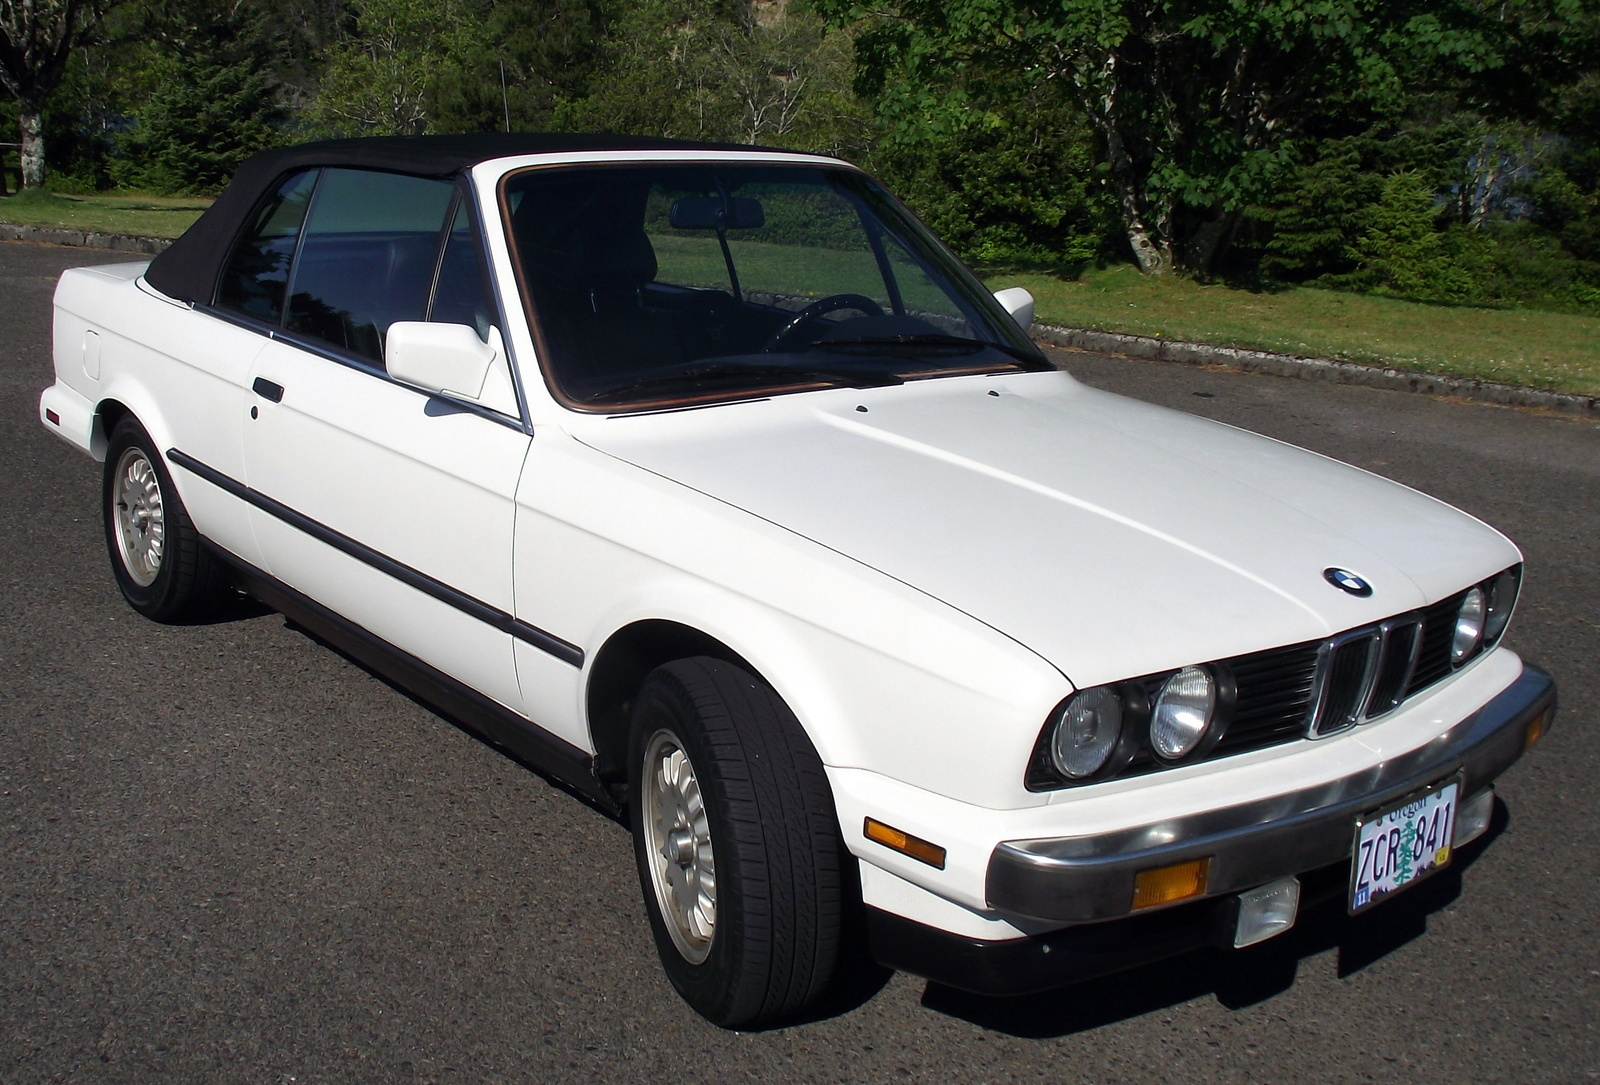 Just bought a 89 325i convertible. Seems straight & solid. What should I do  right away to make certain it keeps running good?